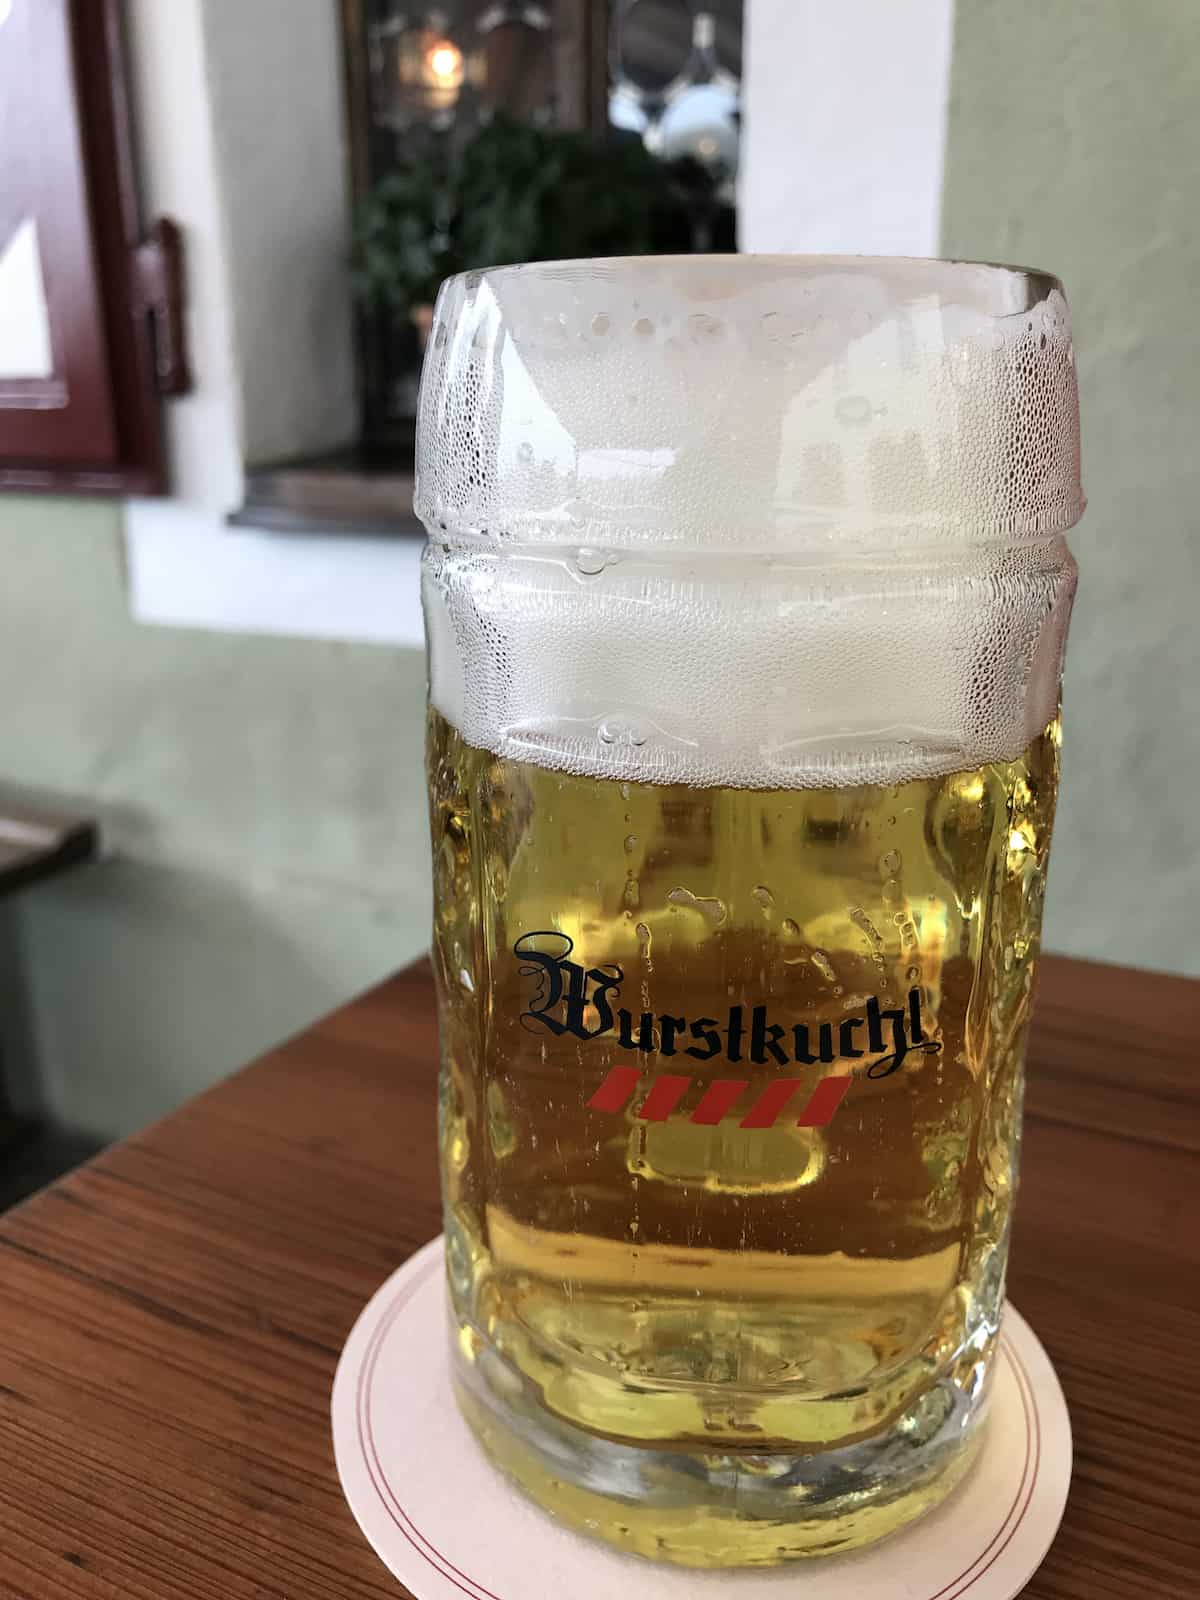 Beer at the Historic Sausage Kitchen in Regensburg Germany.